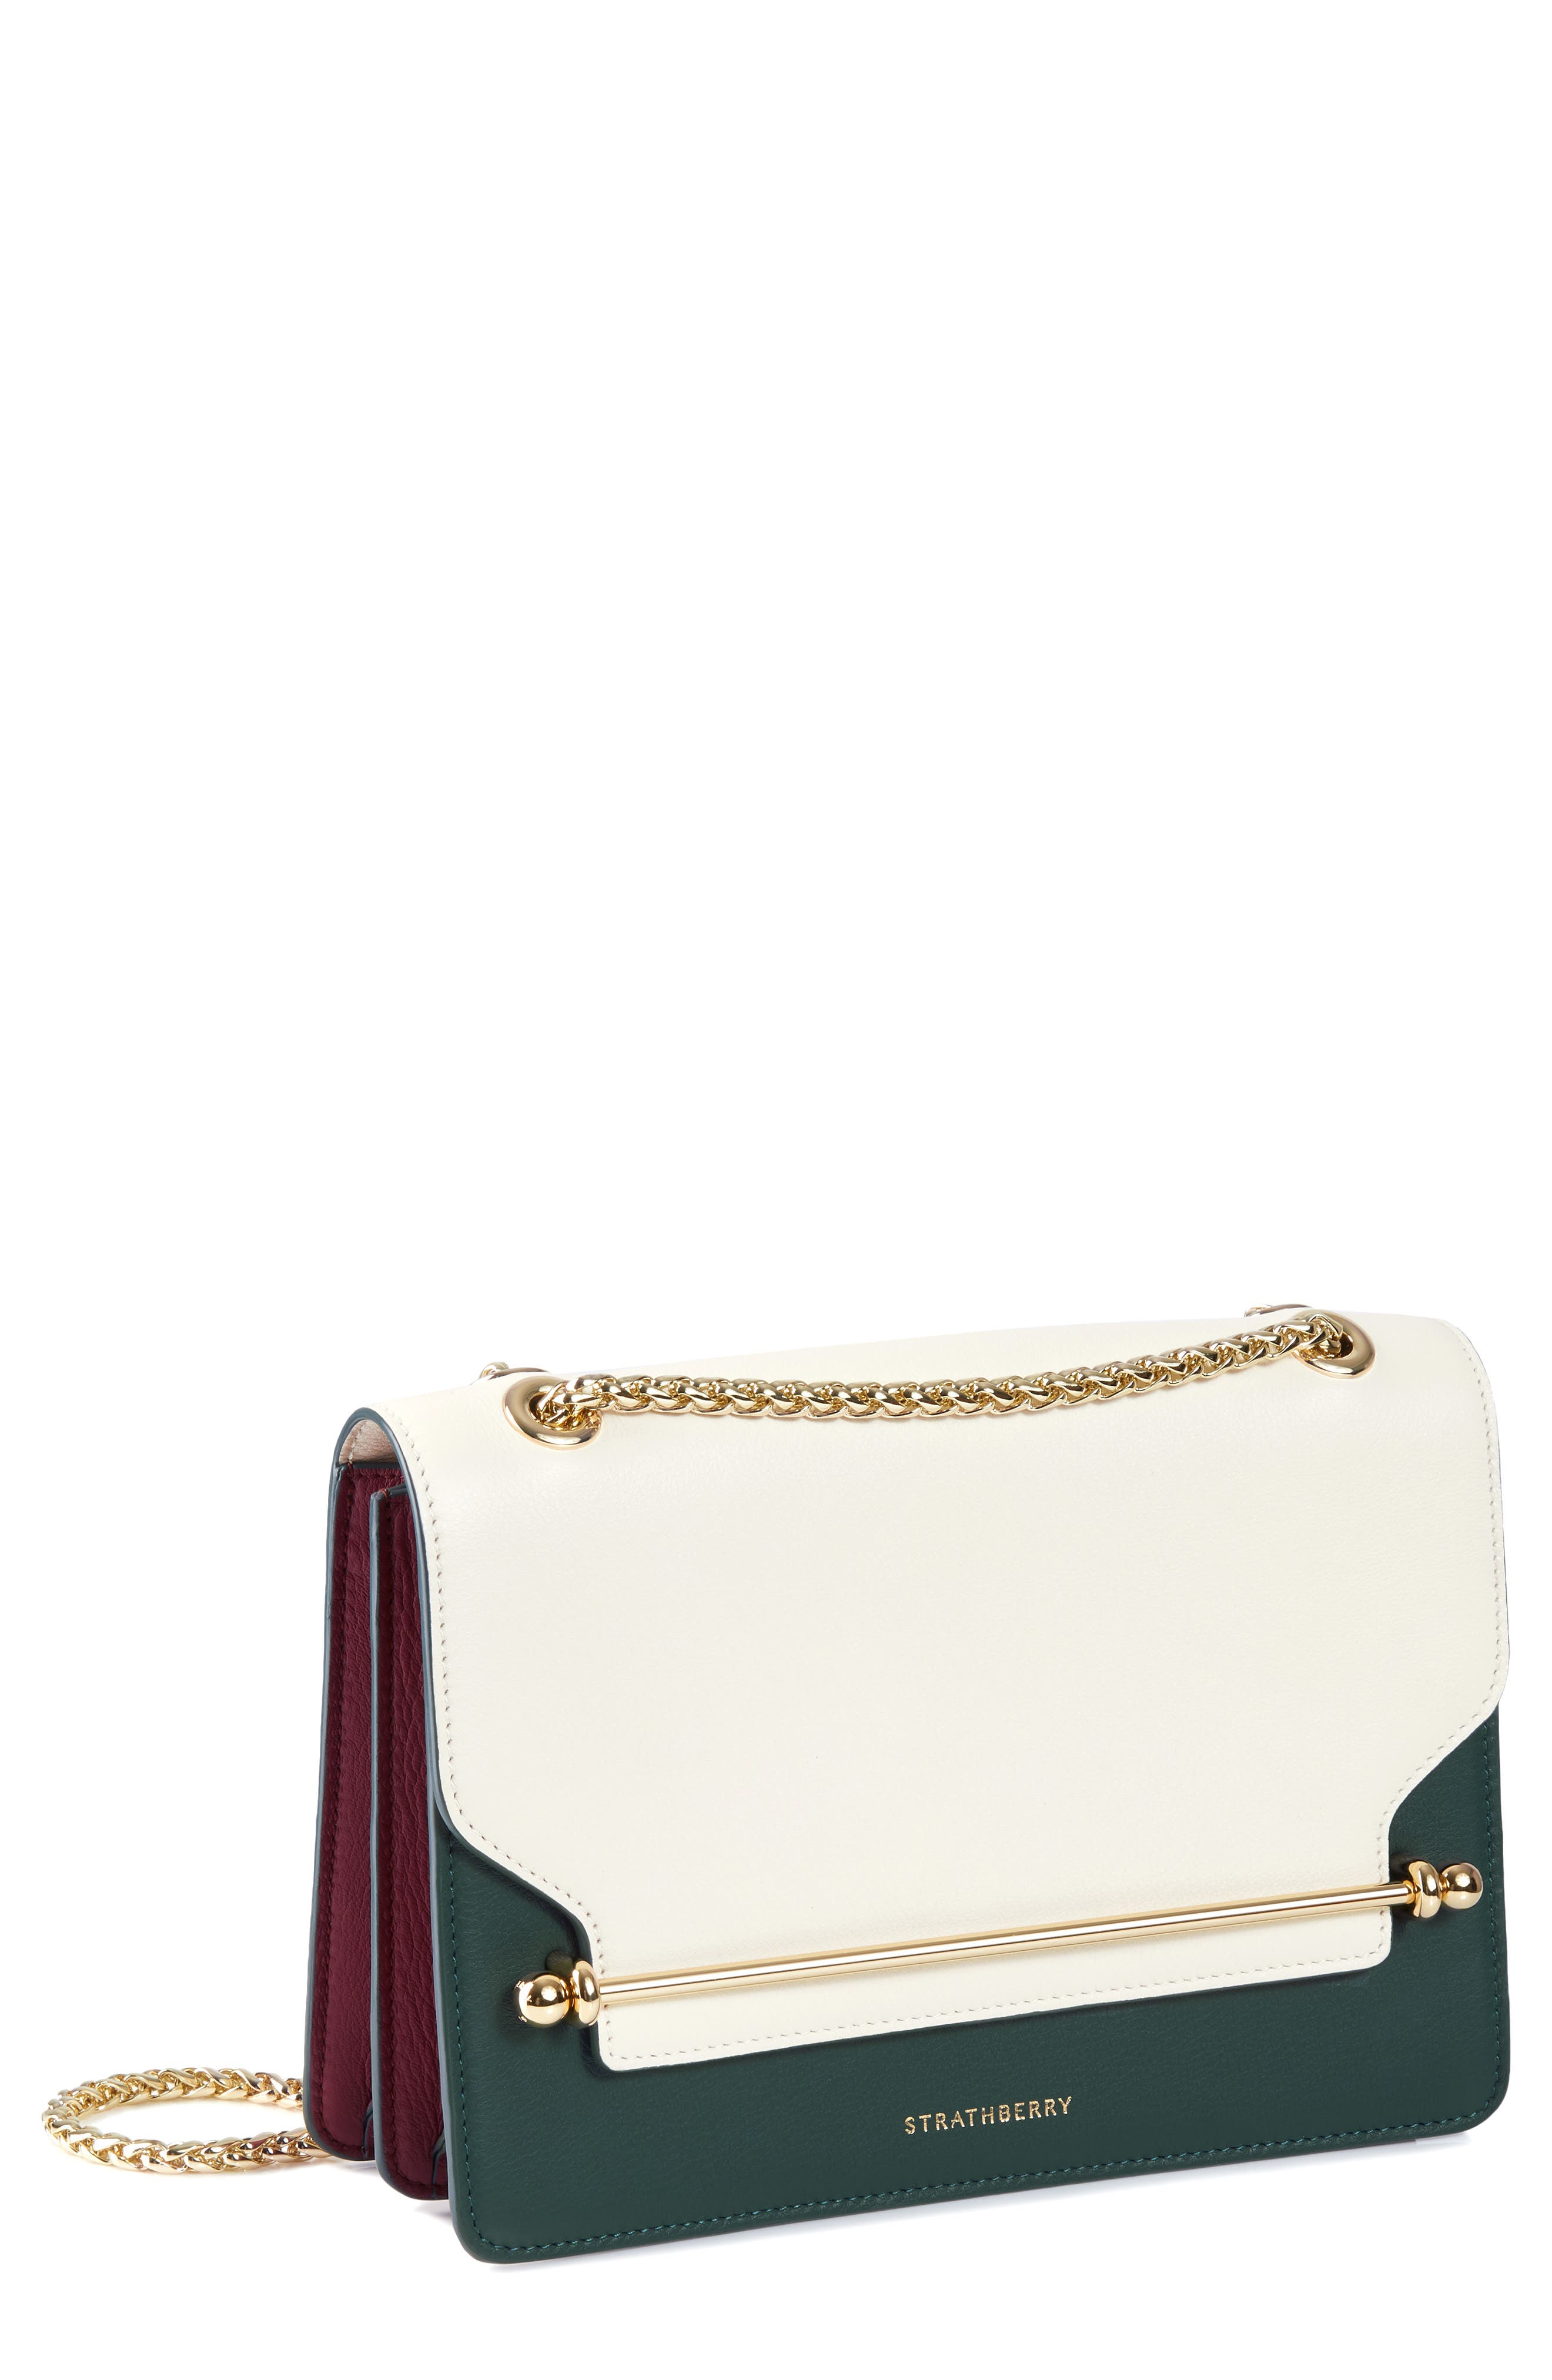 STRATHBERRY East/West Colorblock Leather Crossbody Bag, Main, color, VANILLA/ BOTTLE GREEN/ EMBER